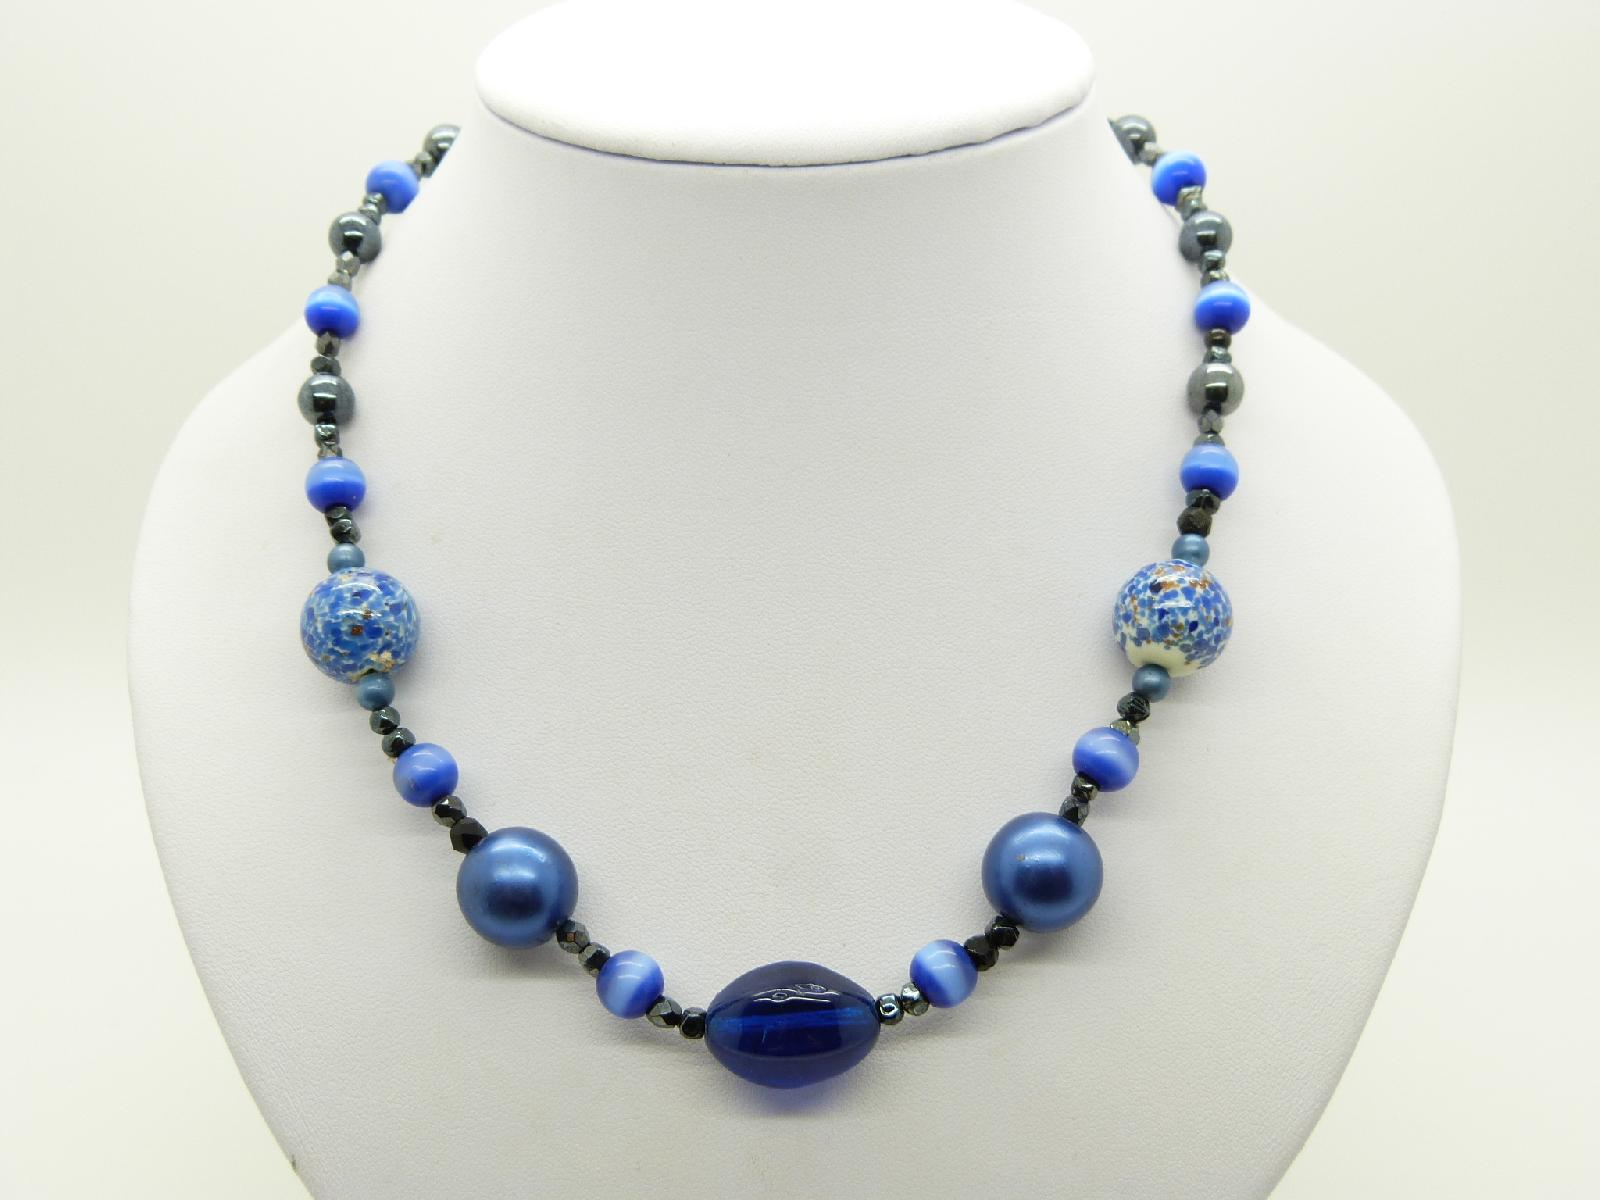 Vintage Redesigned 70s Blue Glass and Hematite Bead Necklace Fab!